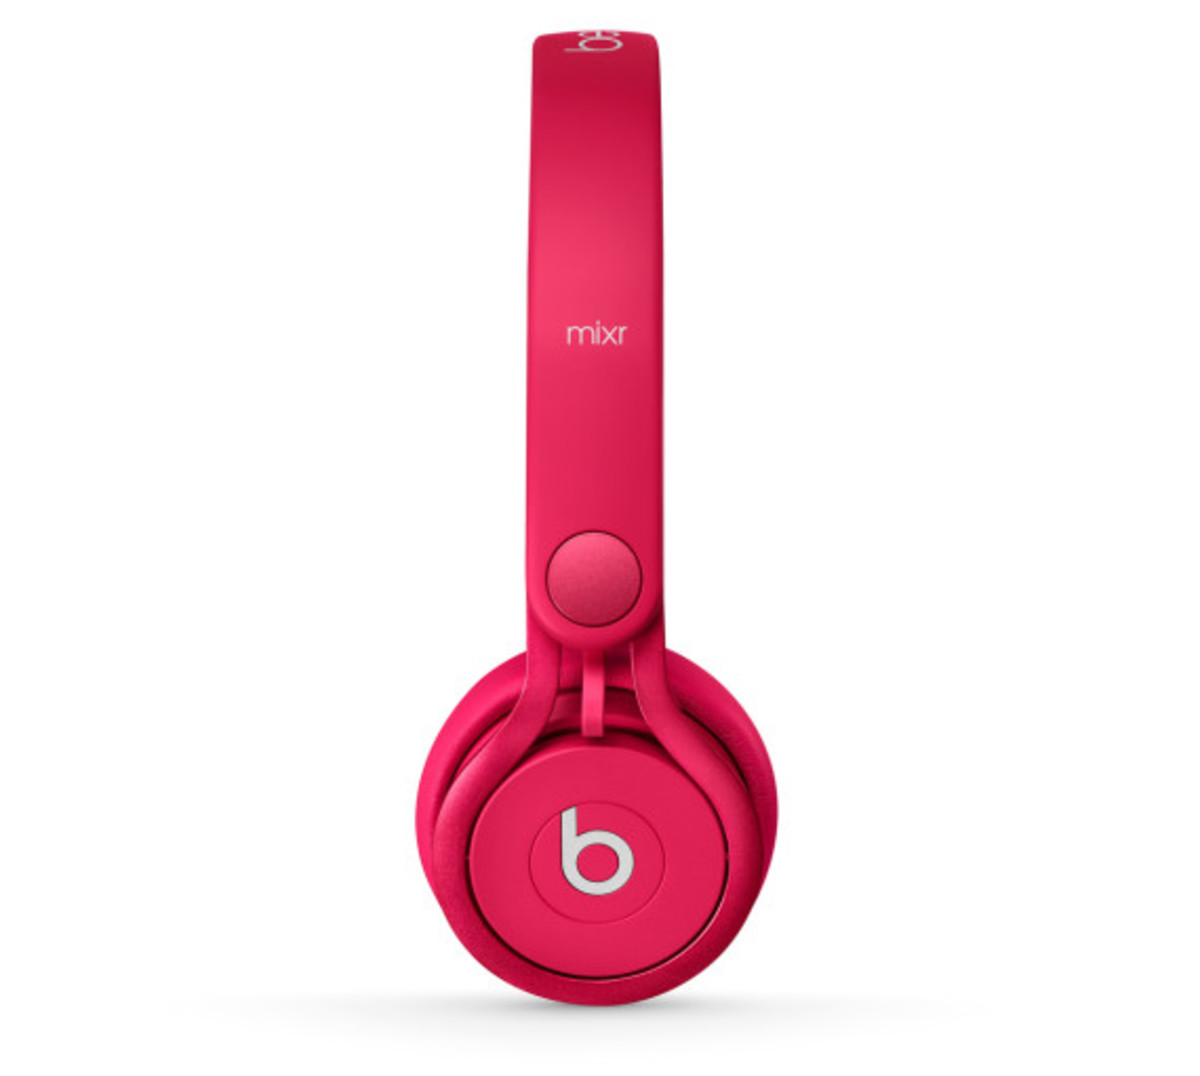 beats-by-dre-mixr-headphones-new-summer-colors-12